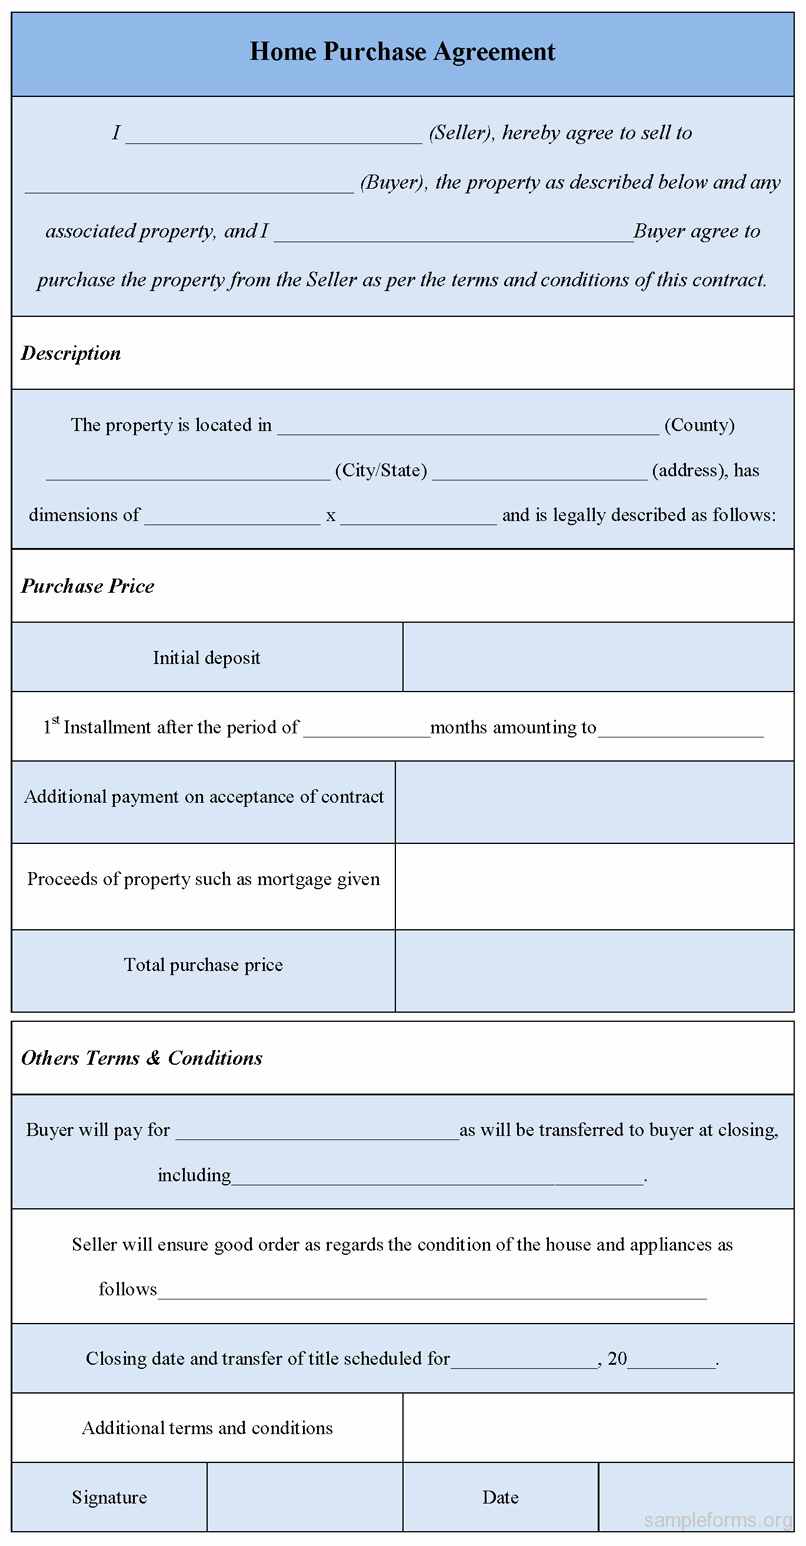 Home Buyout Agreement Elegant Home Purchase Agreement form Sample forms